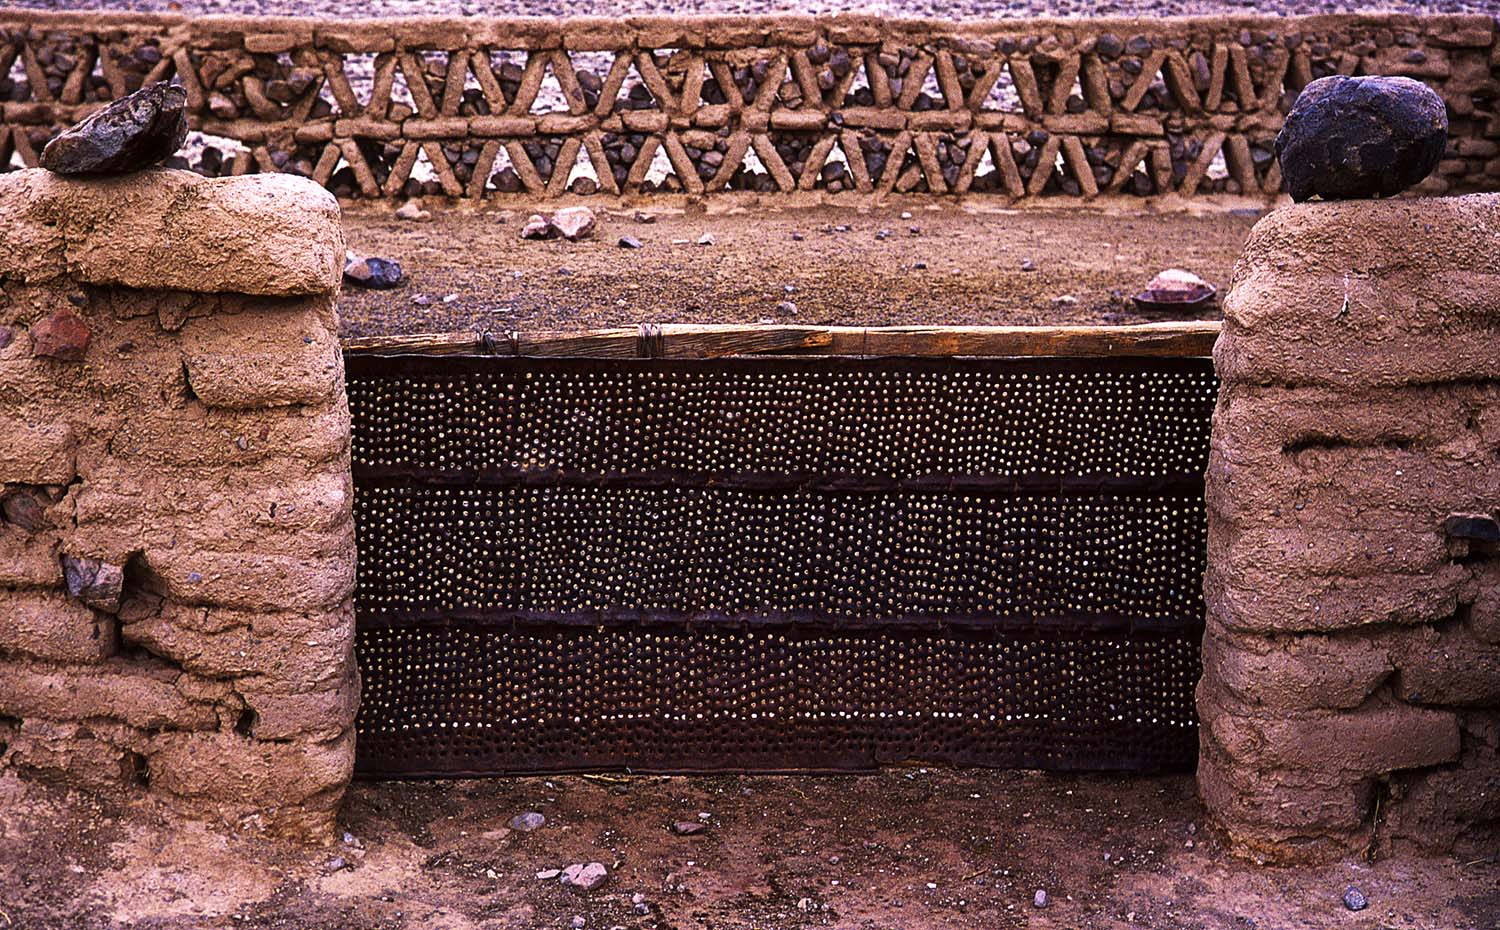 Adobe and stone corral with flattened, perforated steel drum gate.Corral de adobe y piedra con puerta de latón de acero, aplanada y agujereada.